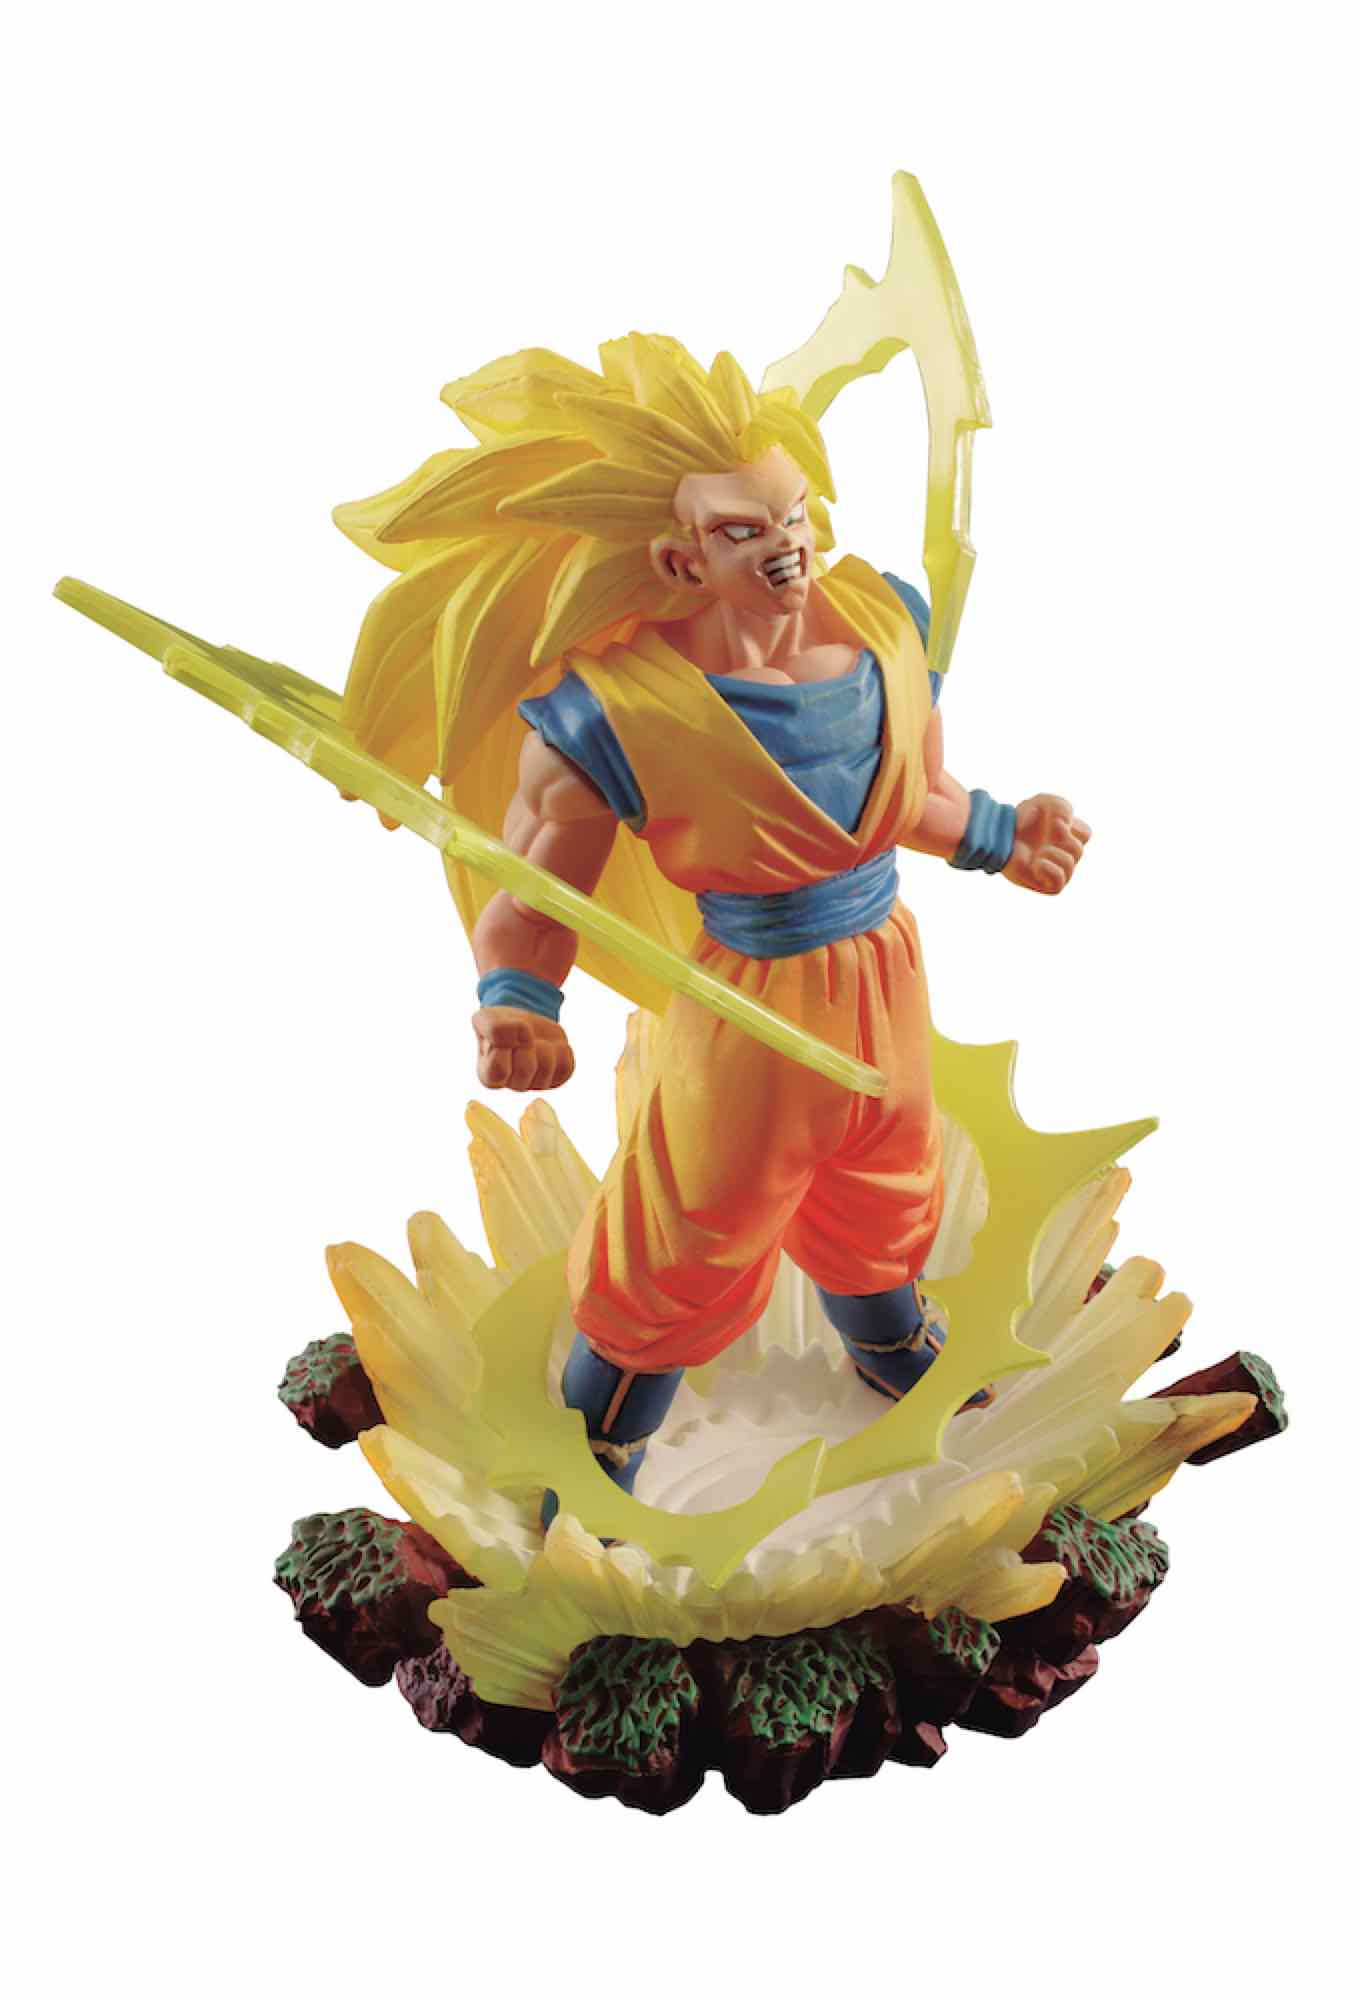 SUPER SAIYAN 3 SON GOKU 03 FIGURA 10 CM DRAGON BALL Z SERIE DRACAP MEMORIAL